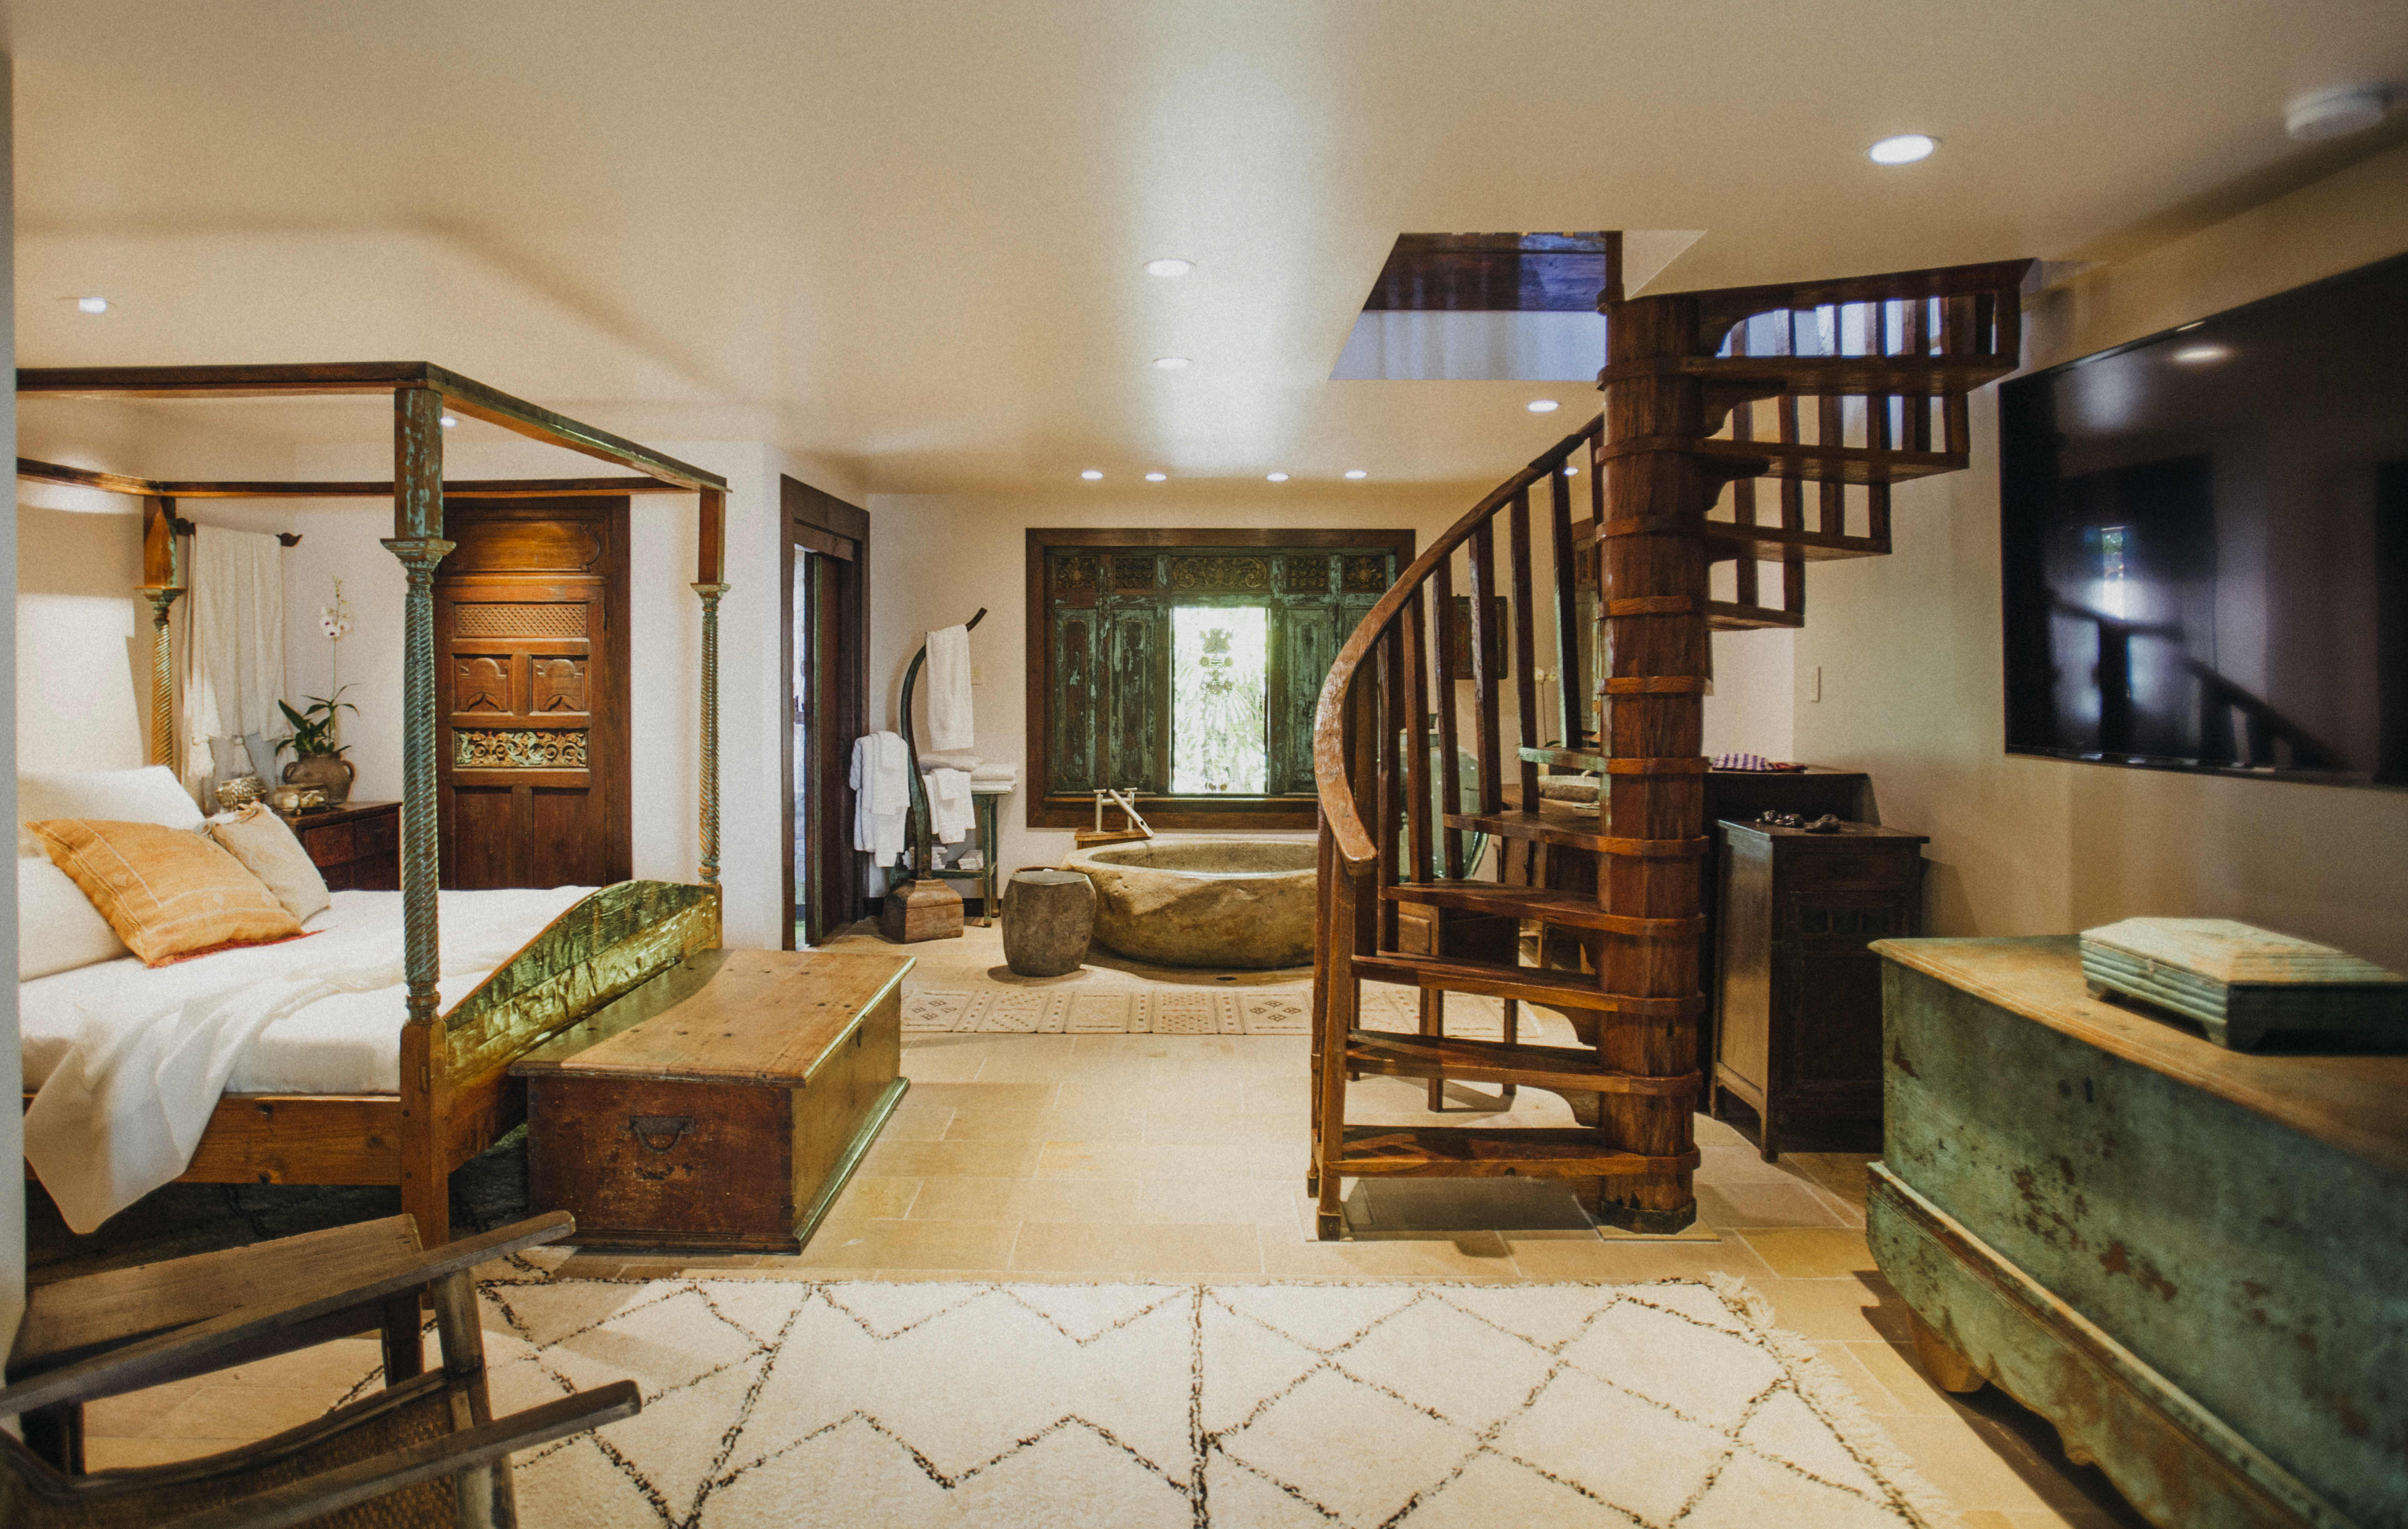 Rustic Bohemian Hawaii Home Surrounded by Jungle | Apartment ...